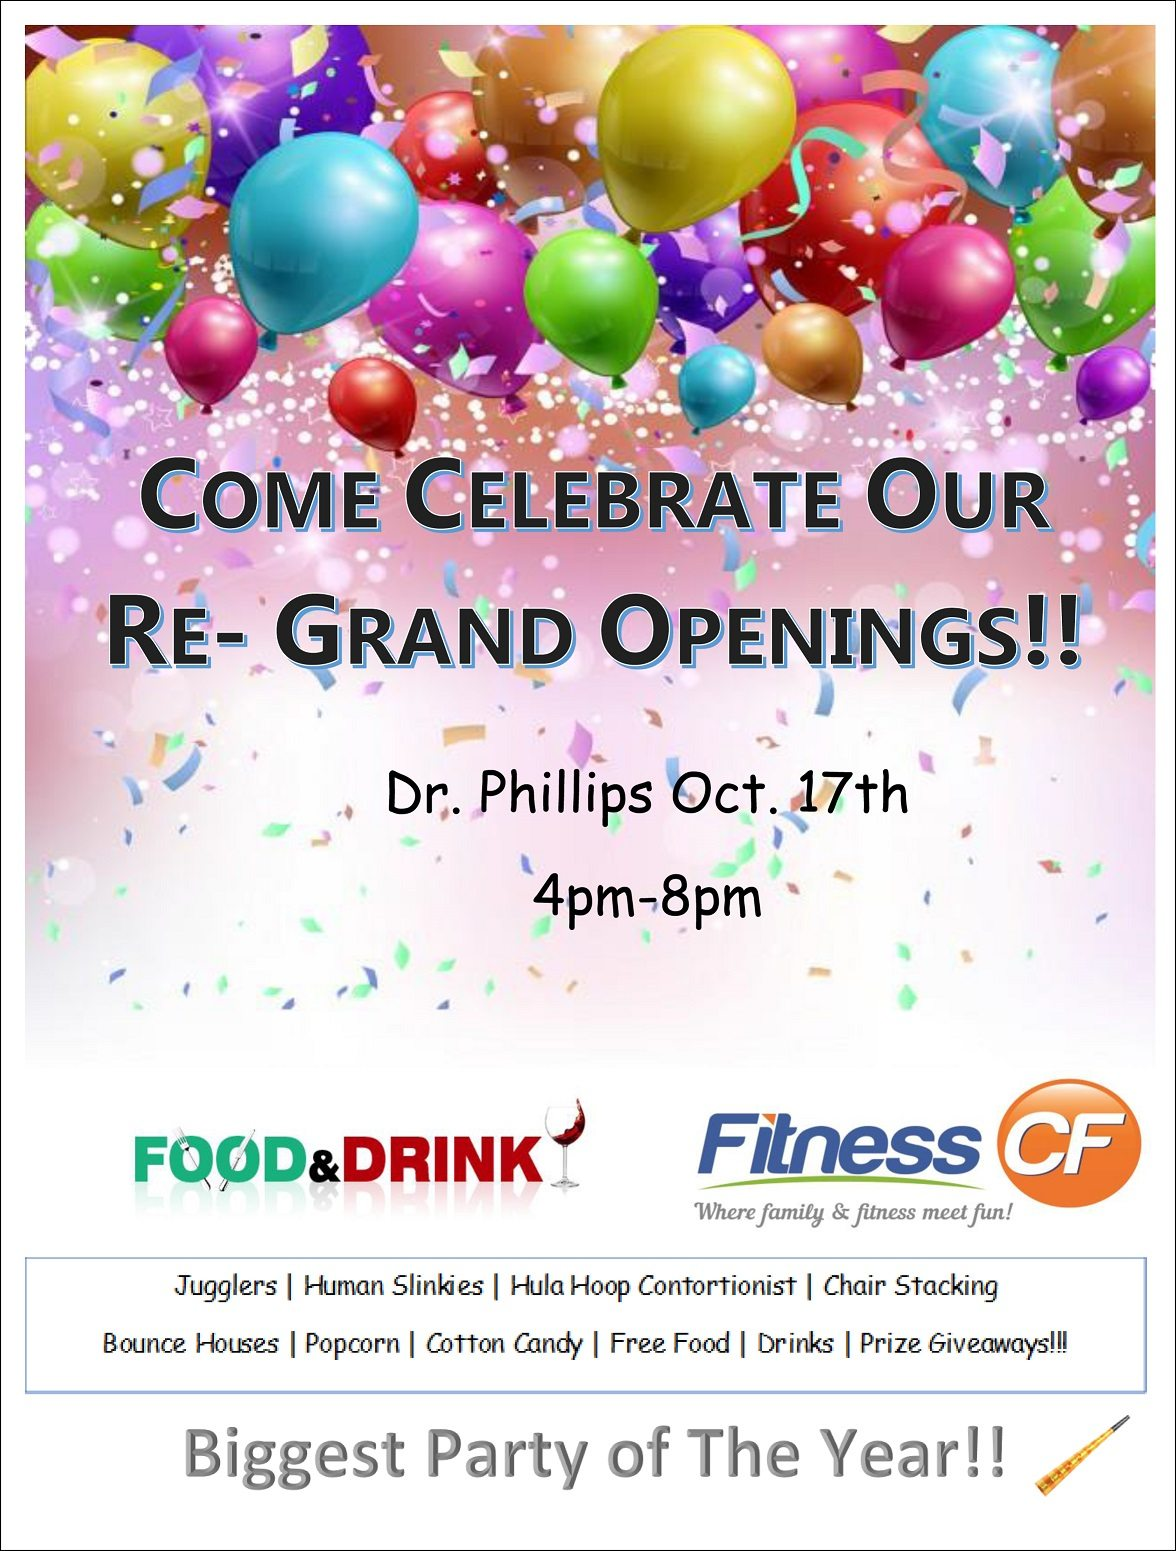 Fitness CF Orlando Re-Grand Opening Event